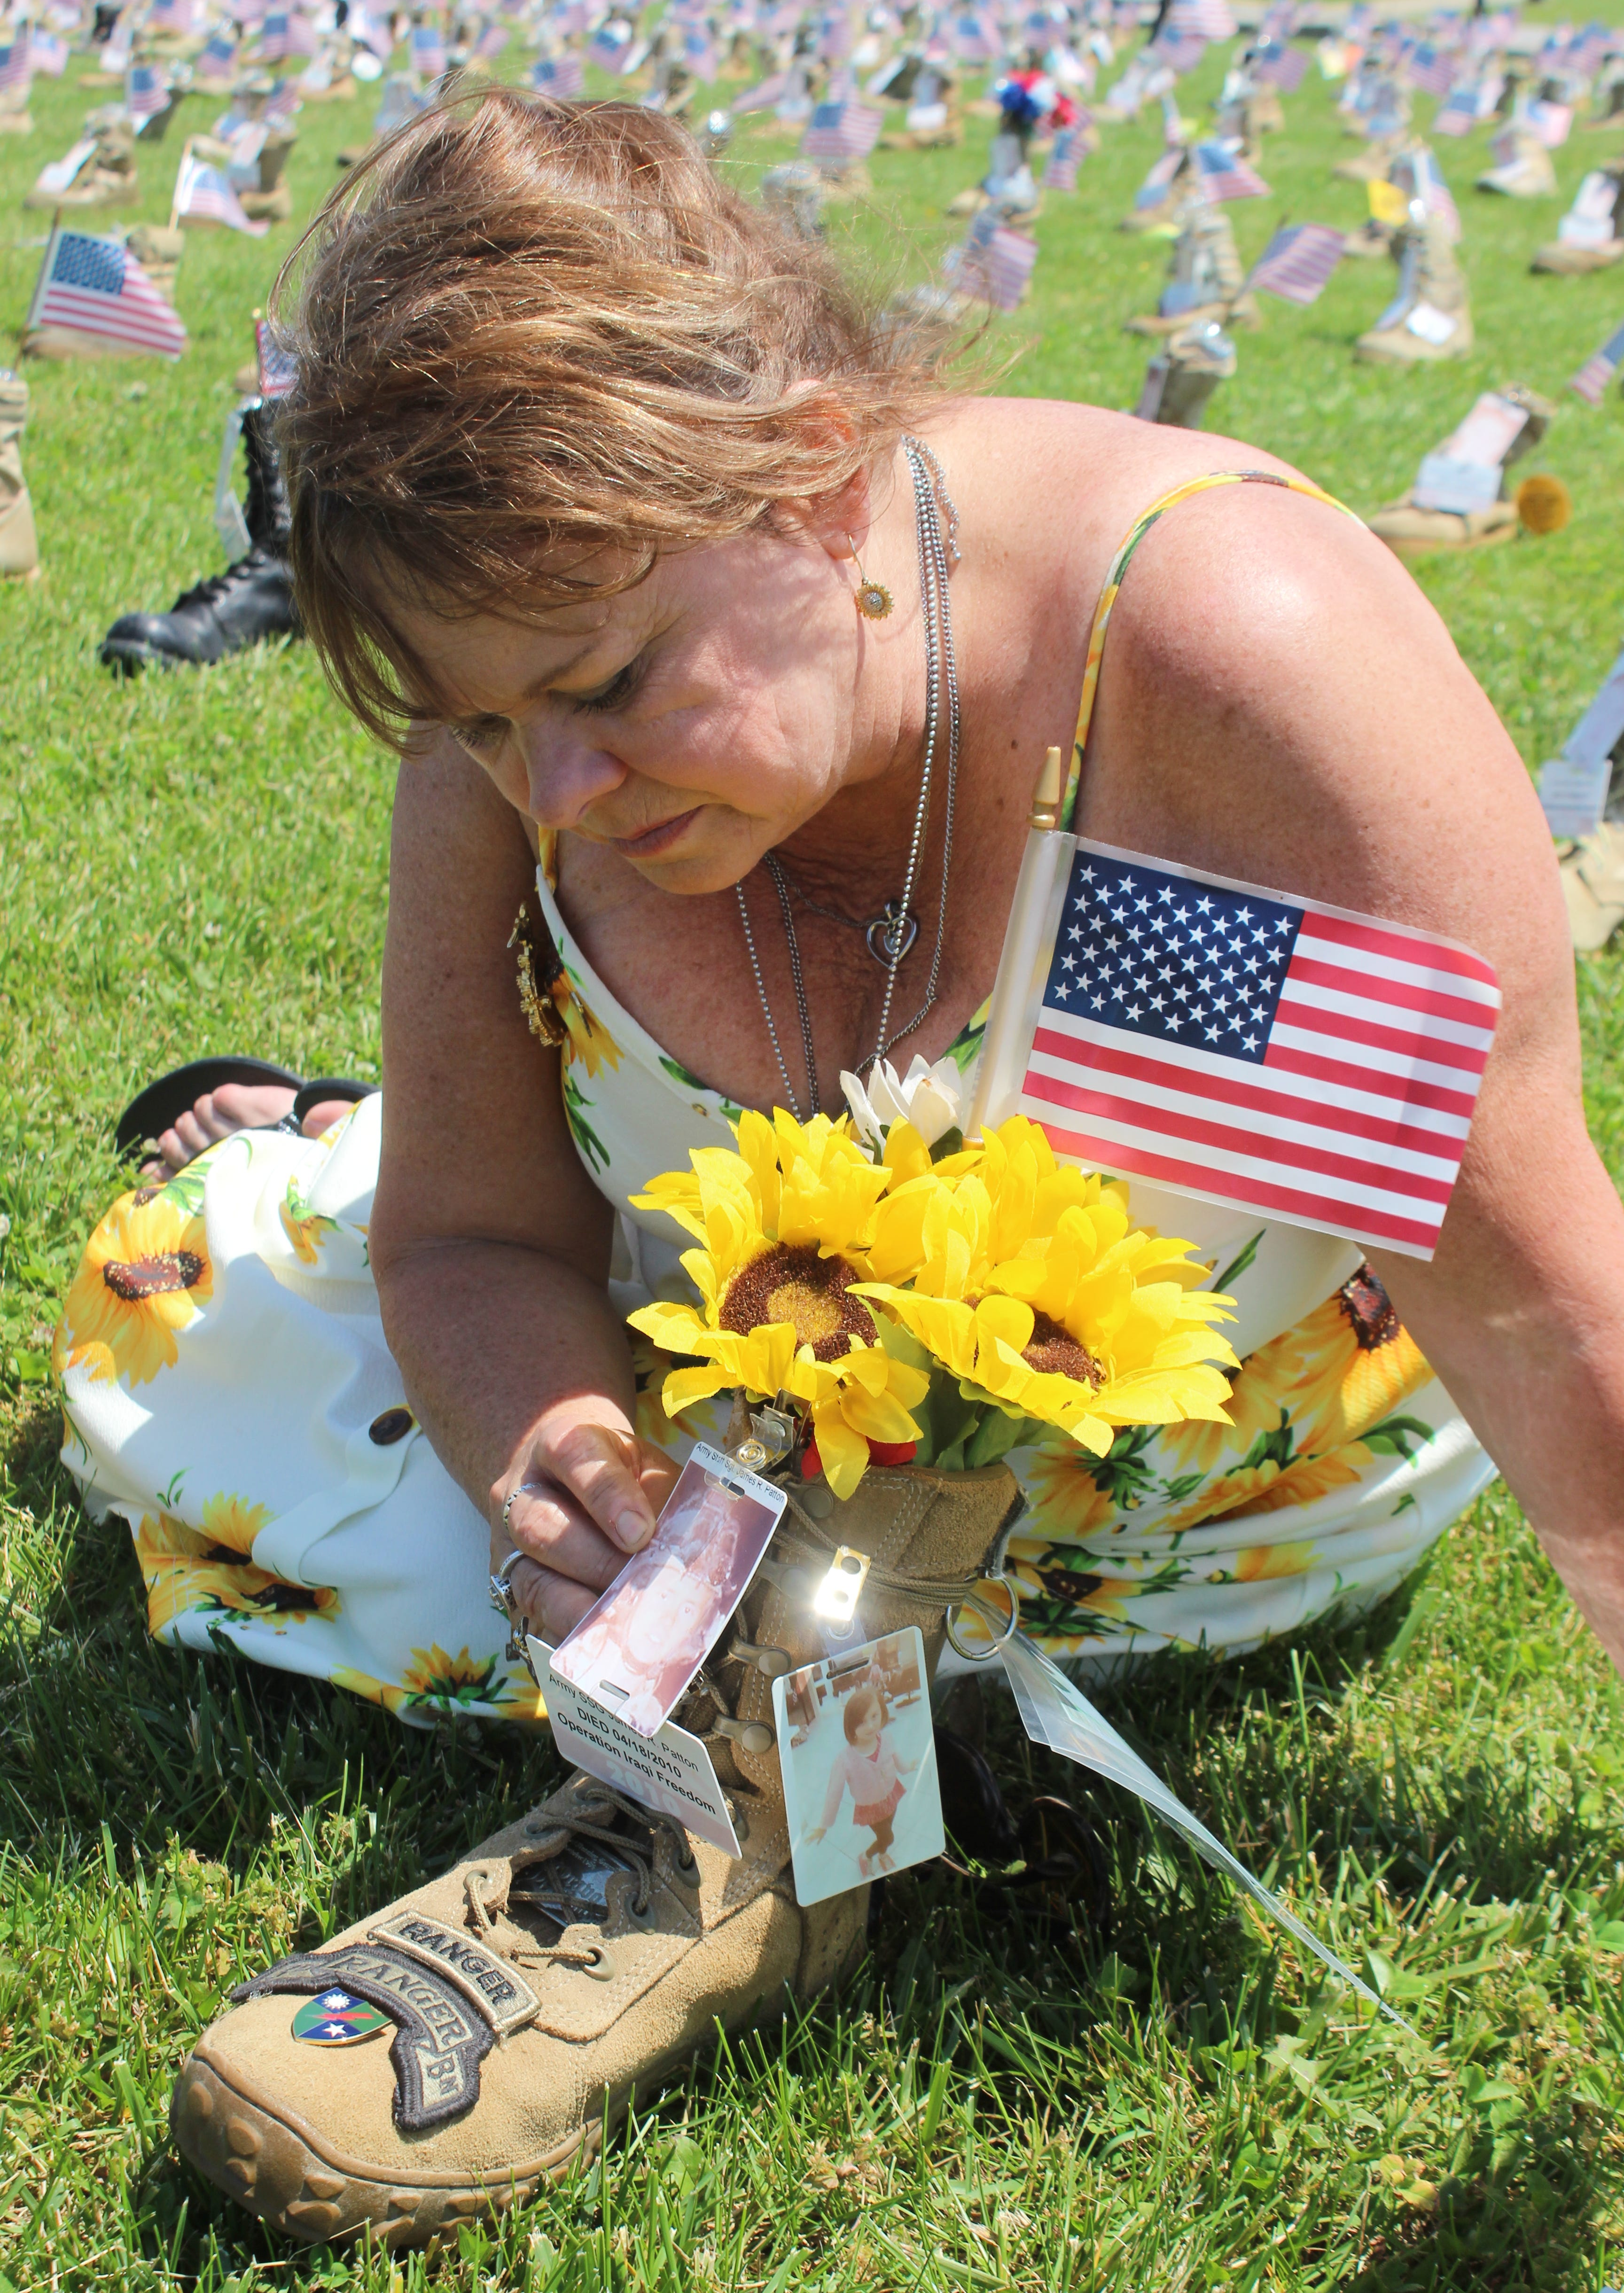 Sheila Patton sits beside the boot made in honor of her son, Staff Sergeant James R. Patton, who was killed in action in Iraq, which now sits as one of the 7,600 boots on display at Fort Campbell as part of the Boots on the Ground display honoring fallen service members on May 17, 2019.